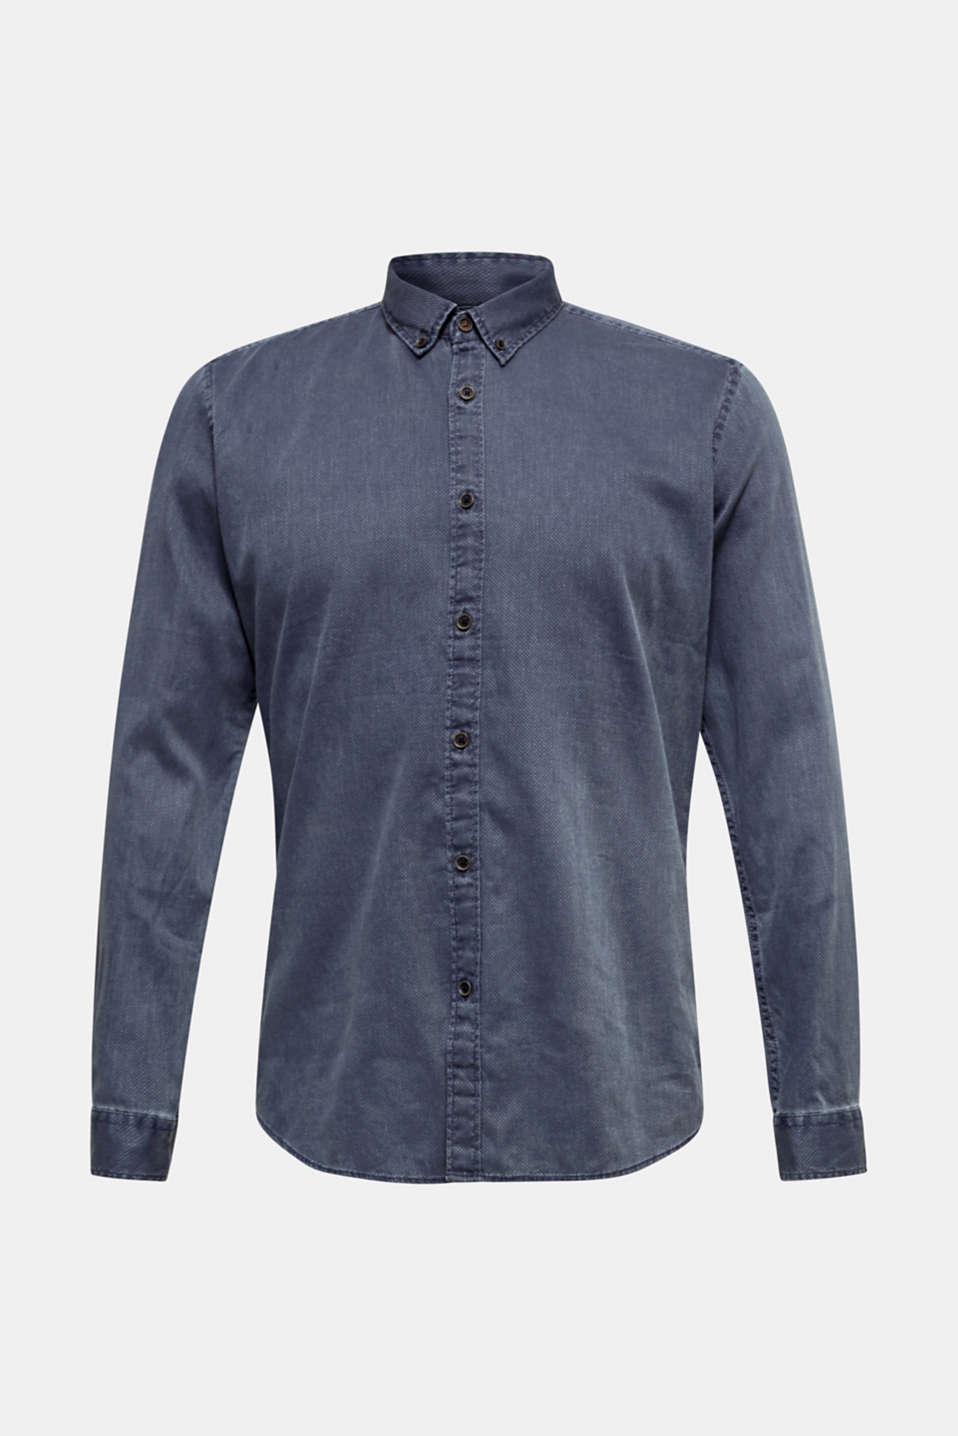 Shirt with a checked texture, 100% cotton, DARK BLUE 5, detail image number 7